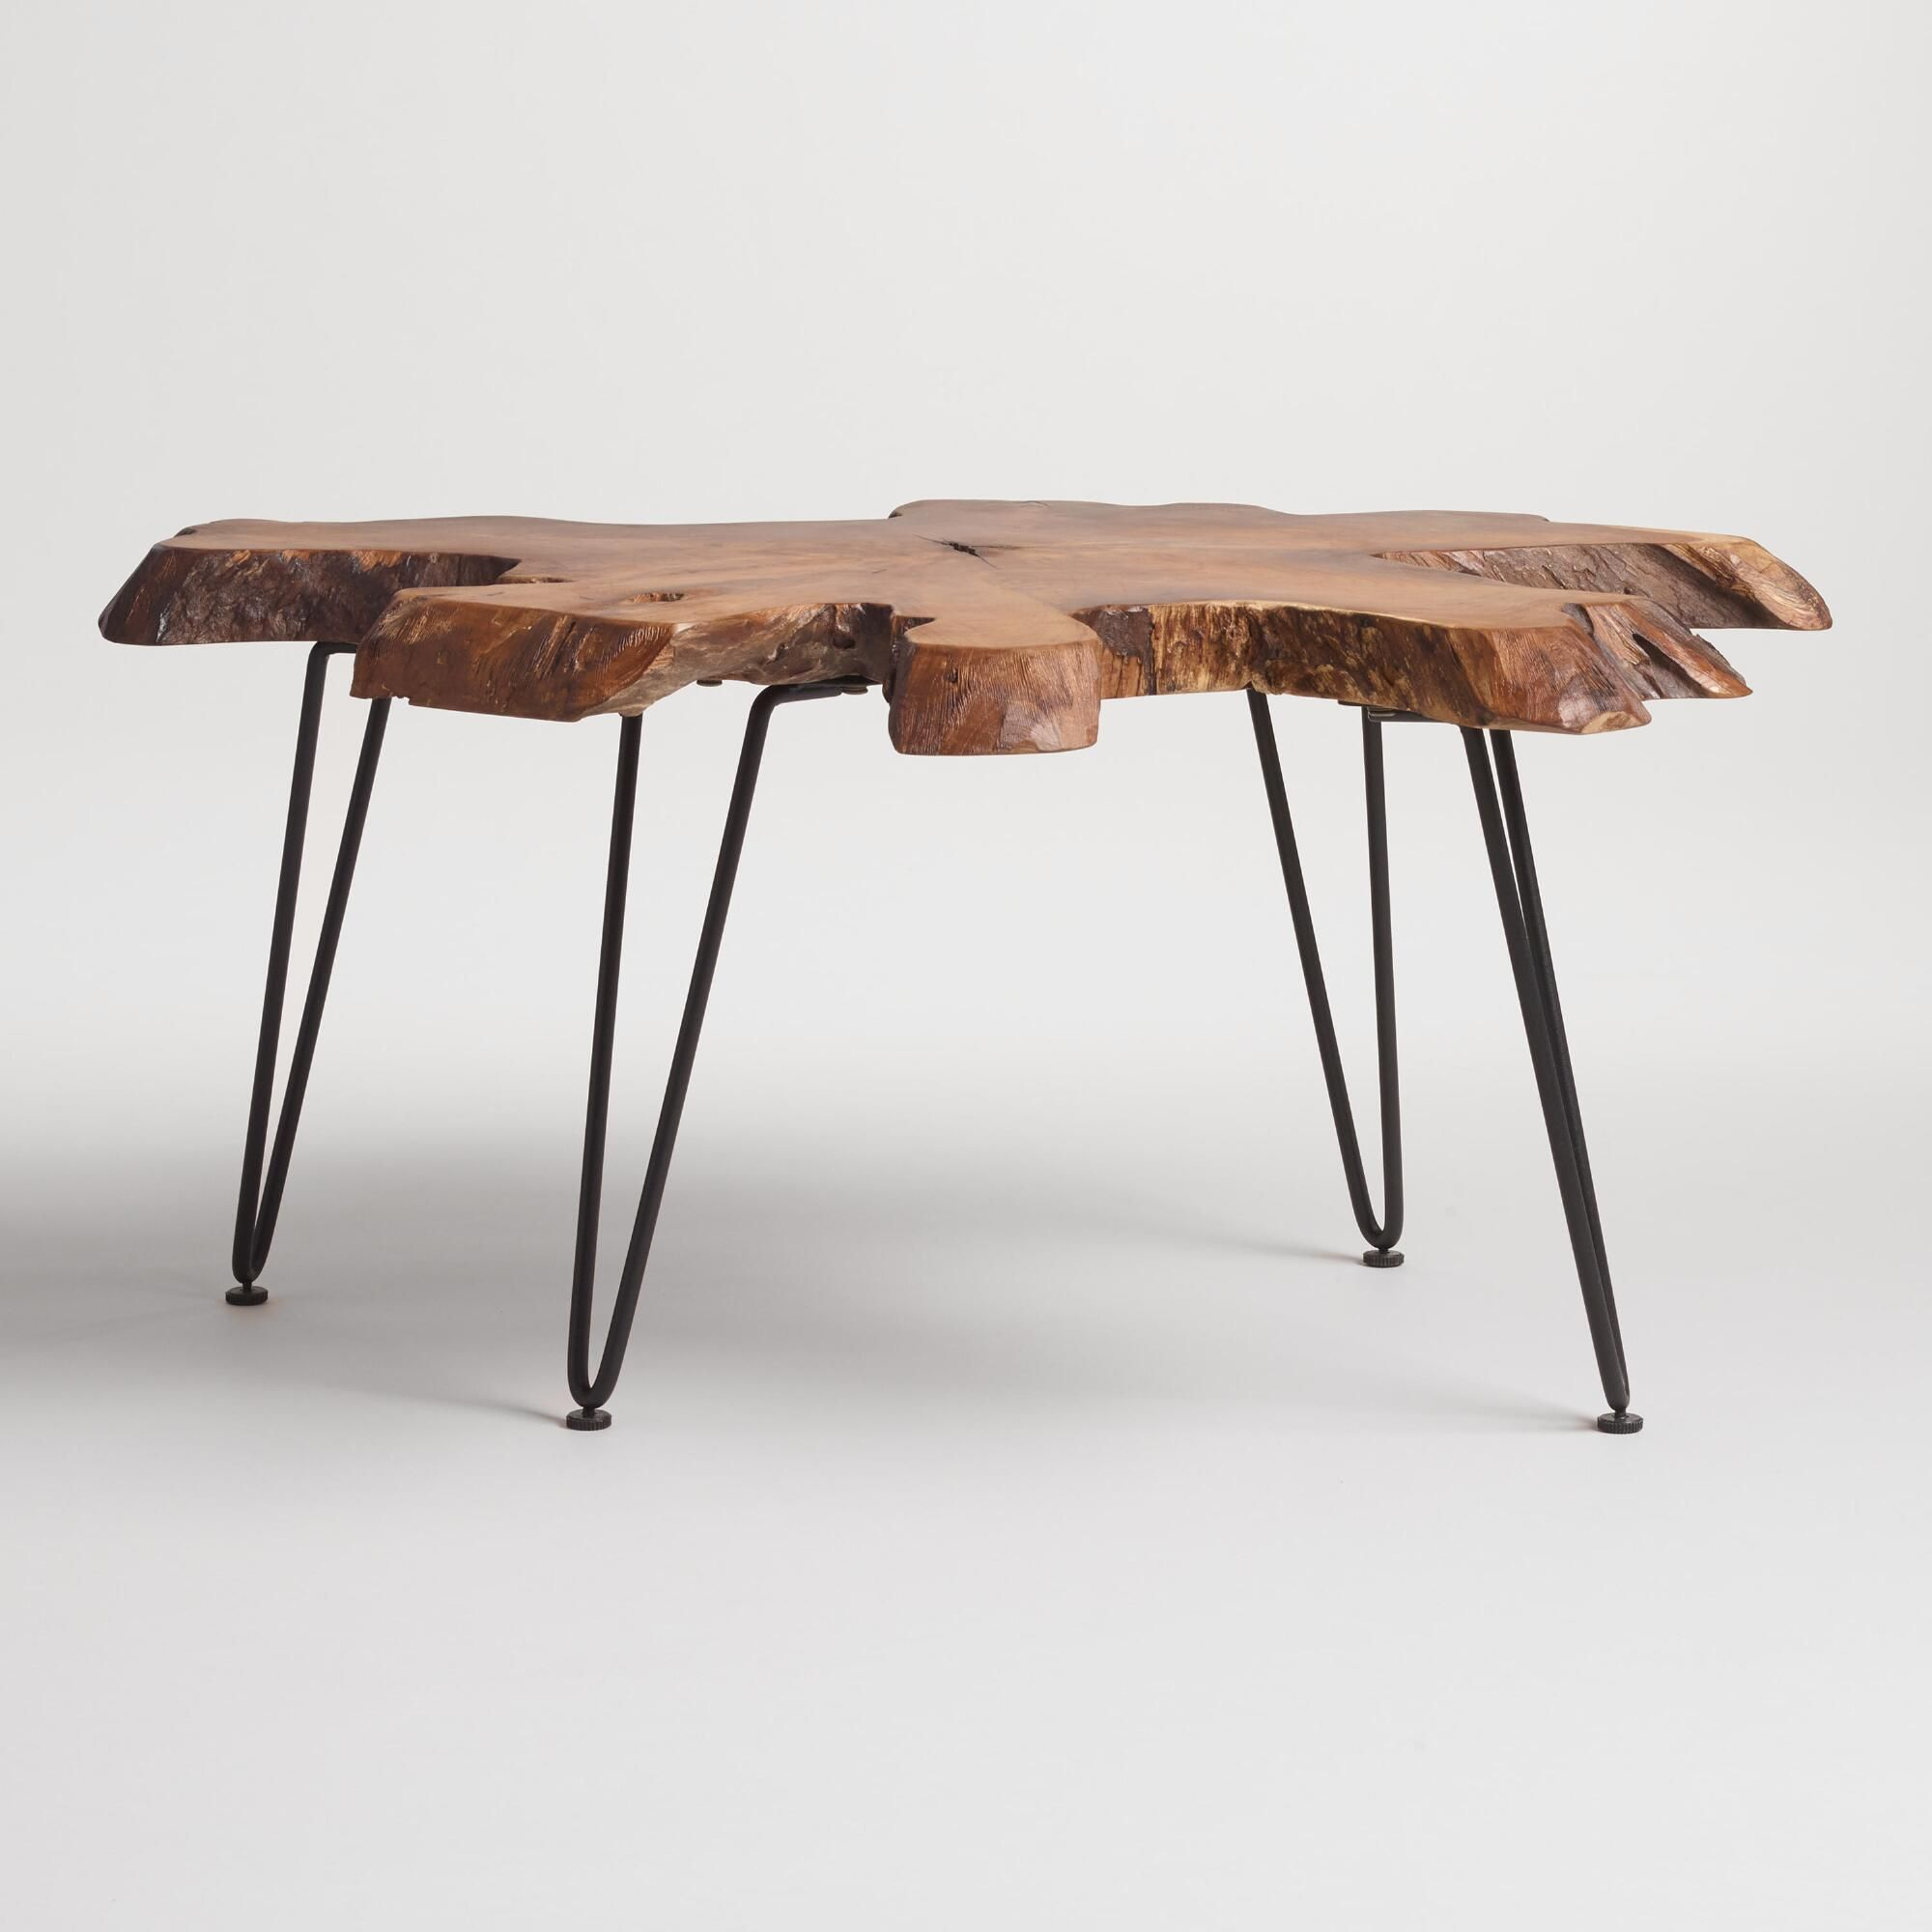 Our coffee table is crafted in Indonesia from a real slice of richly-grained teak root with inherent holes, knots and variations in size and shape. Featuring black mid-century style hairpin legs, this standout piece is truly one of a kind.